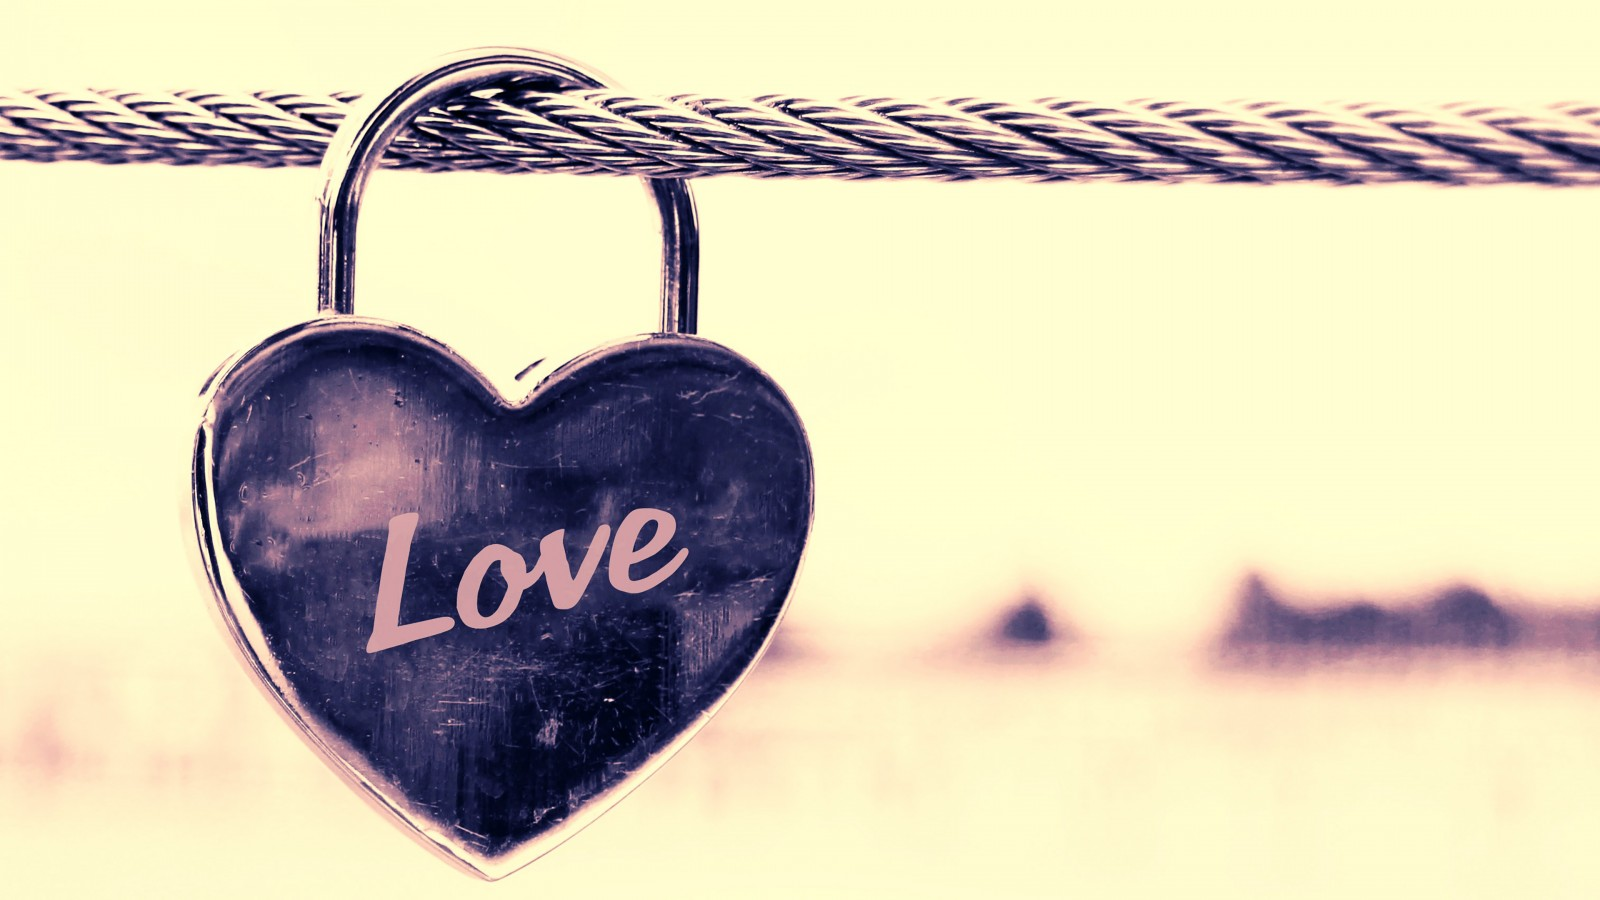 Hd Love Kiss Wallpapers For Android Love Heart Lock 4k Wallpapers Hd Wallpapers Id 28355